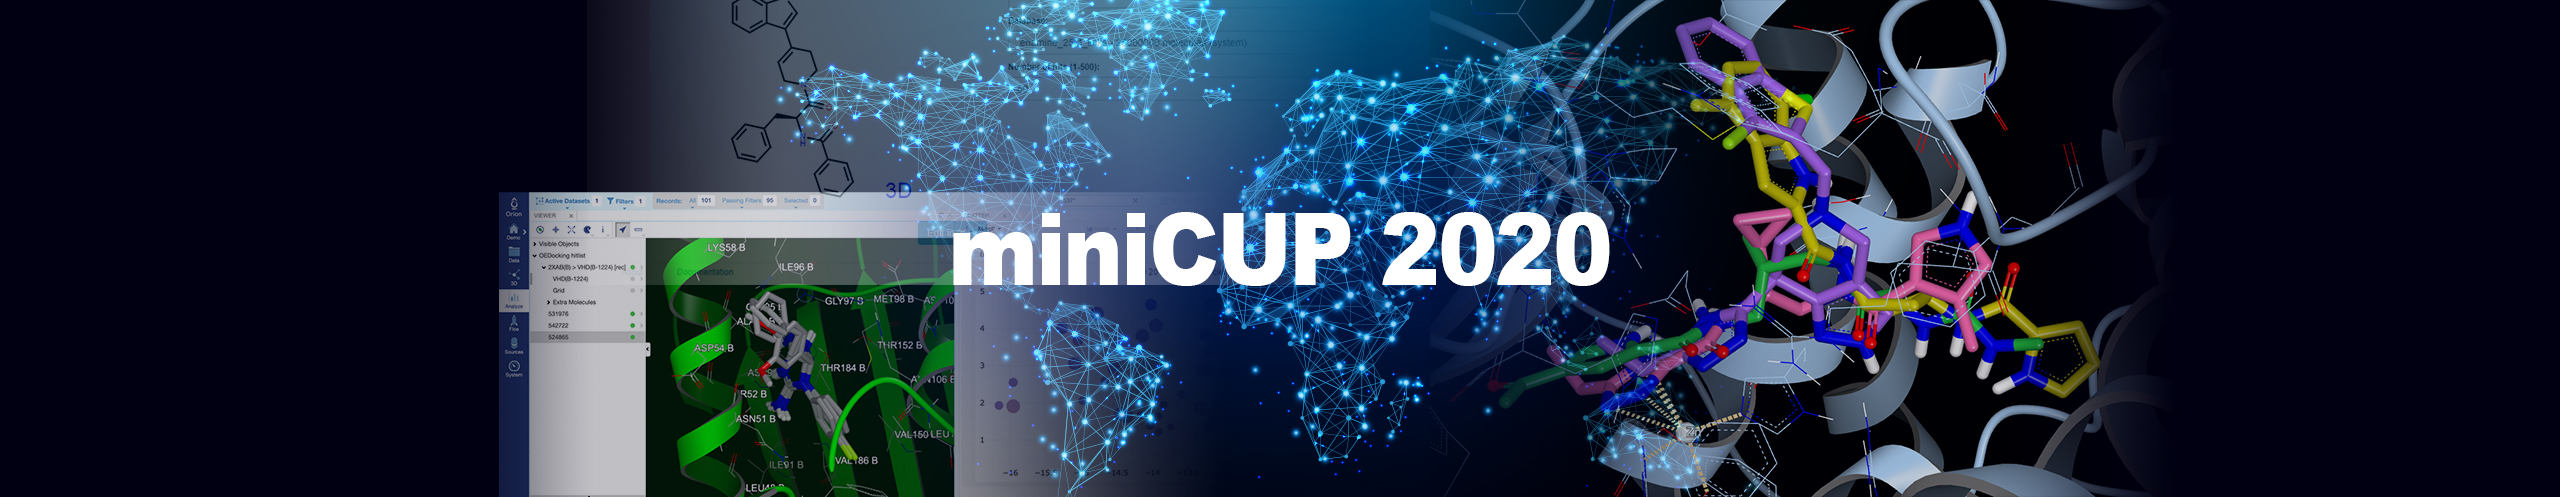 miniCUP - Europe/Middle East/Africa | Oct. 21, 2020